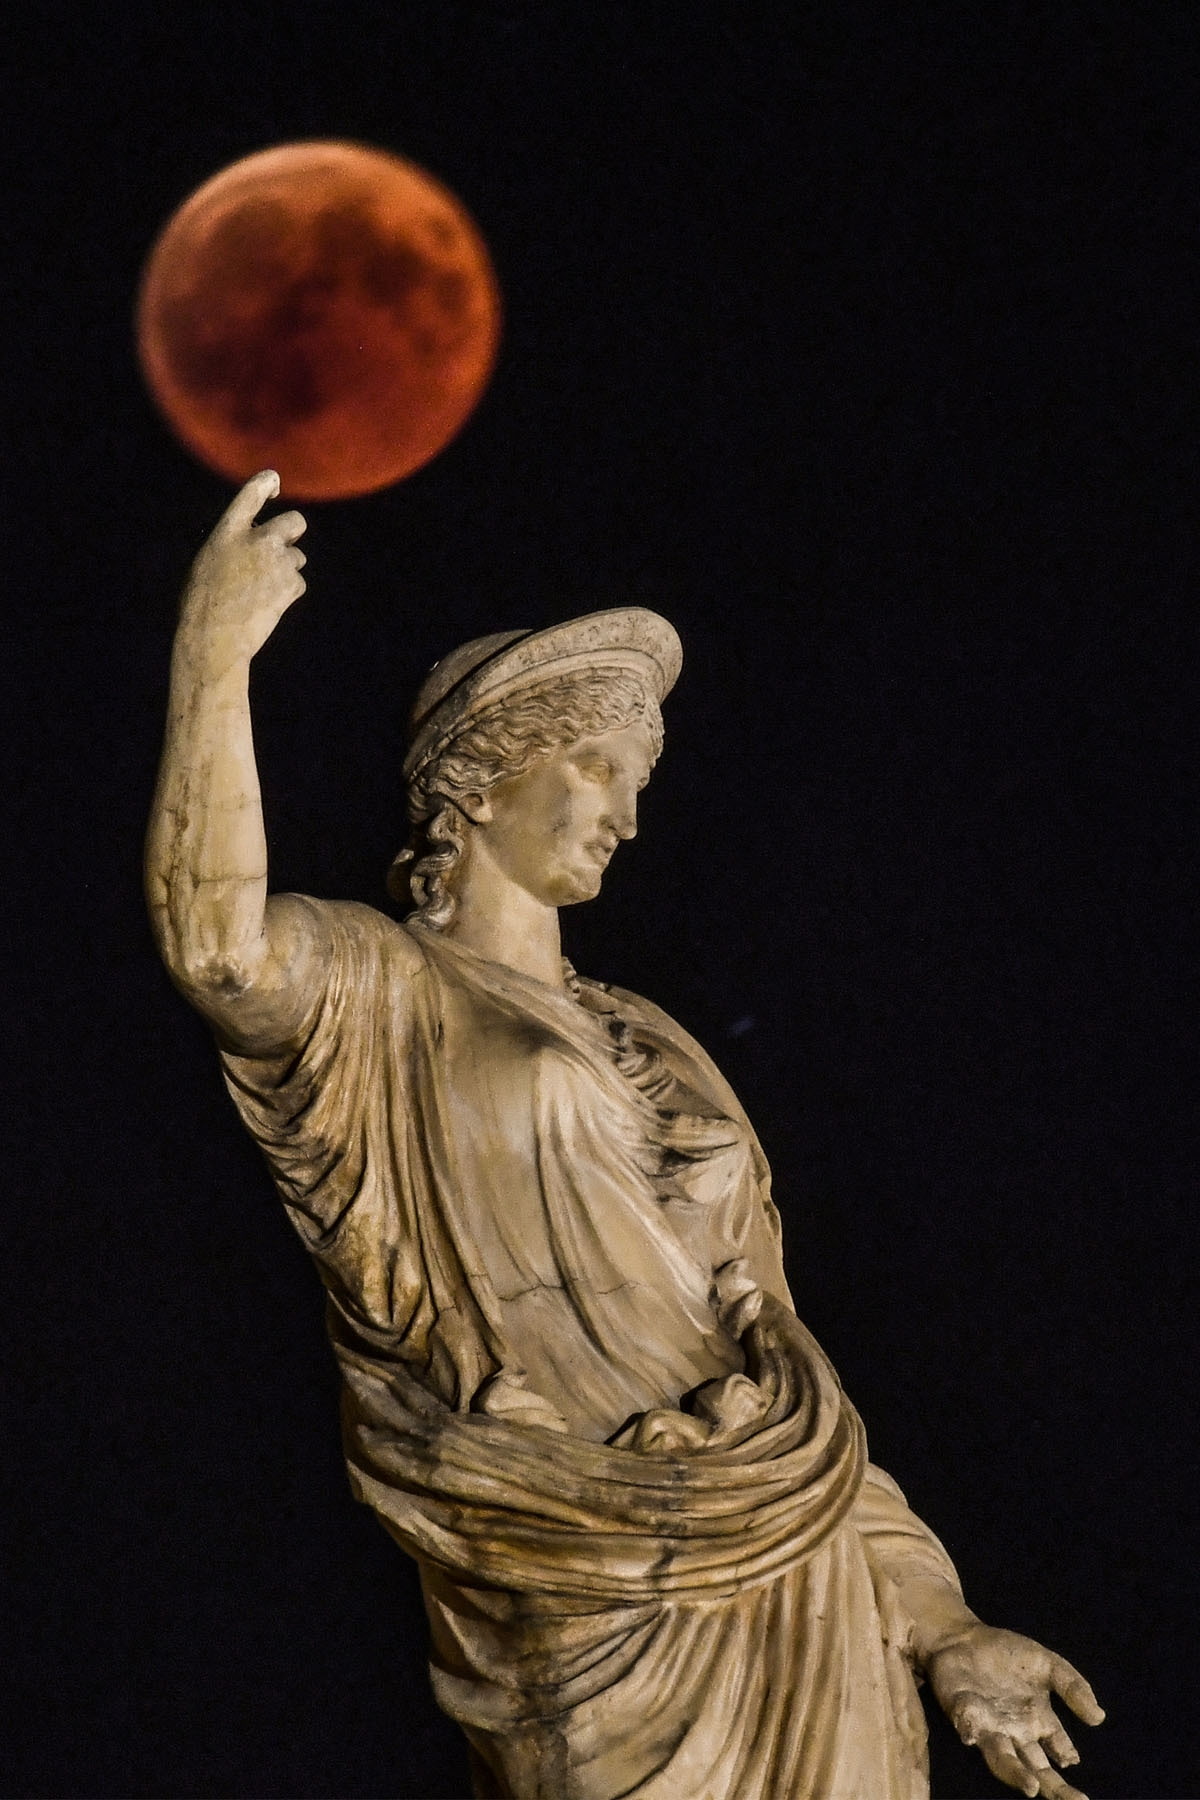 A picture shows the full moon during a blood moon eclipse beside a statue of the ancient Greek goddess Hera in central Athens on July 27, 2018.